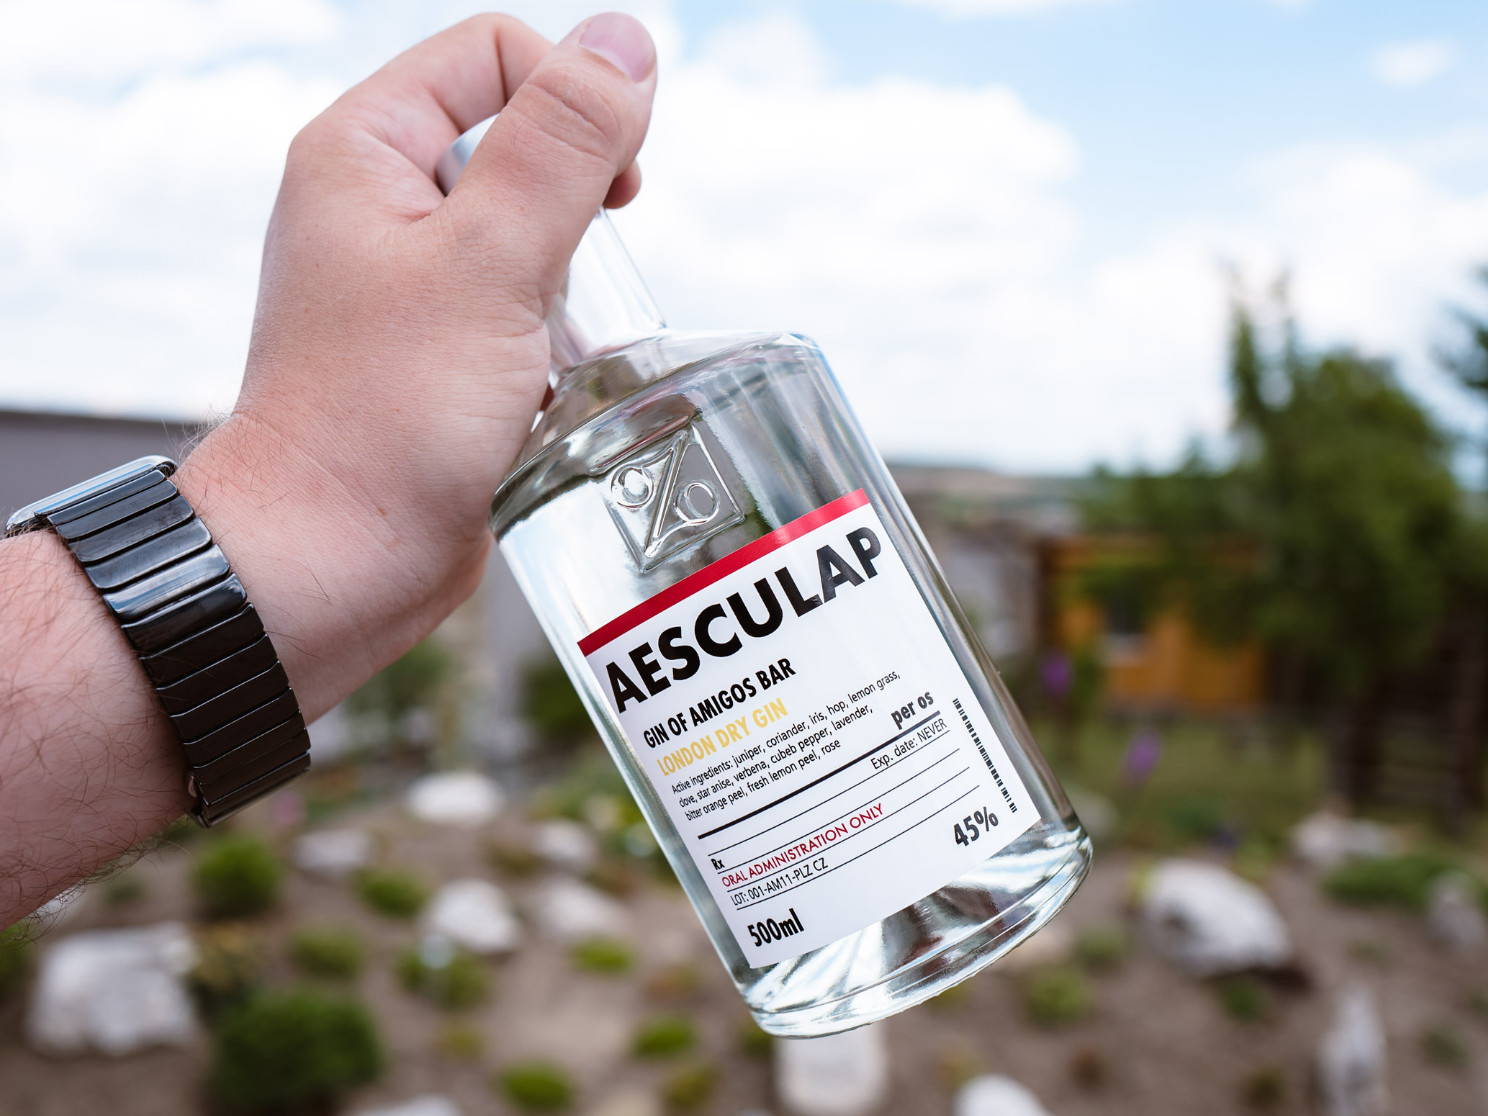 Aesculap gin